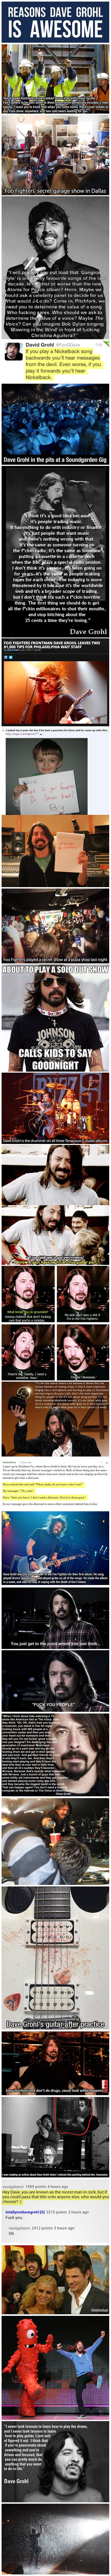 Dave Grohl is an amazing person. Outside the box, not living for others. Always loved him, always will